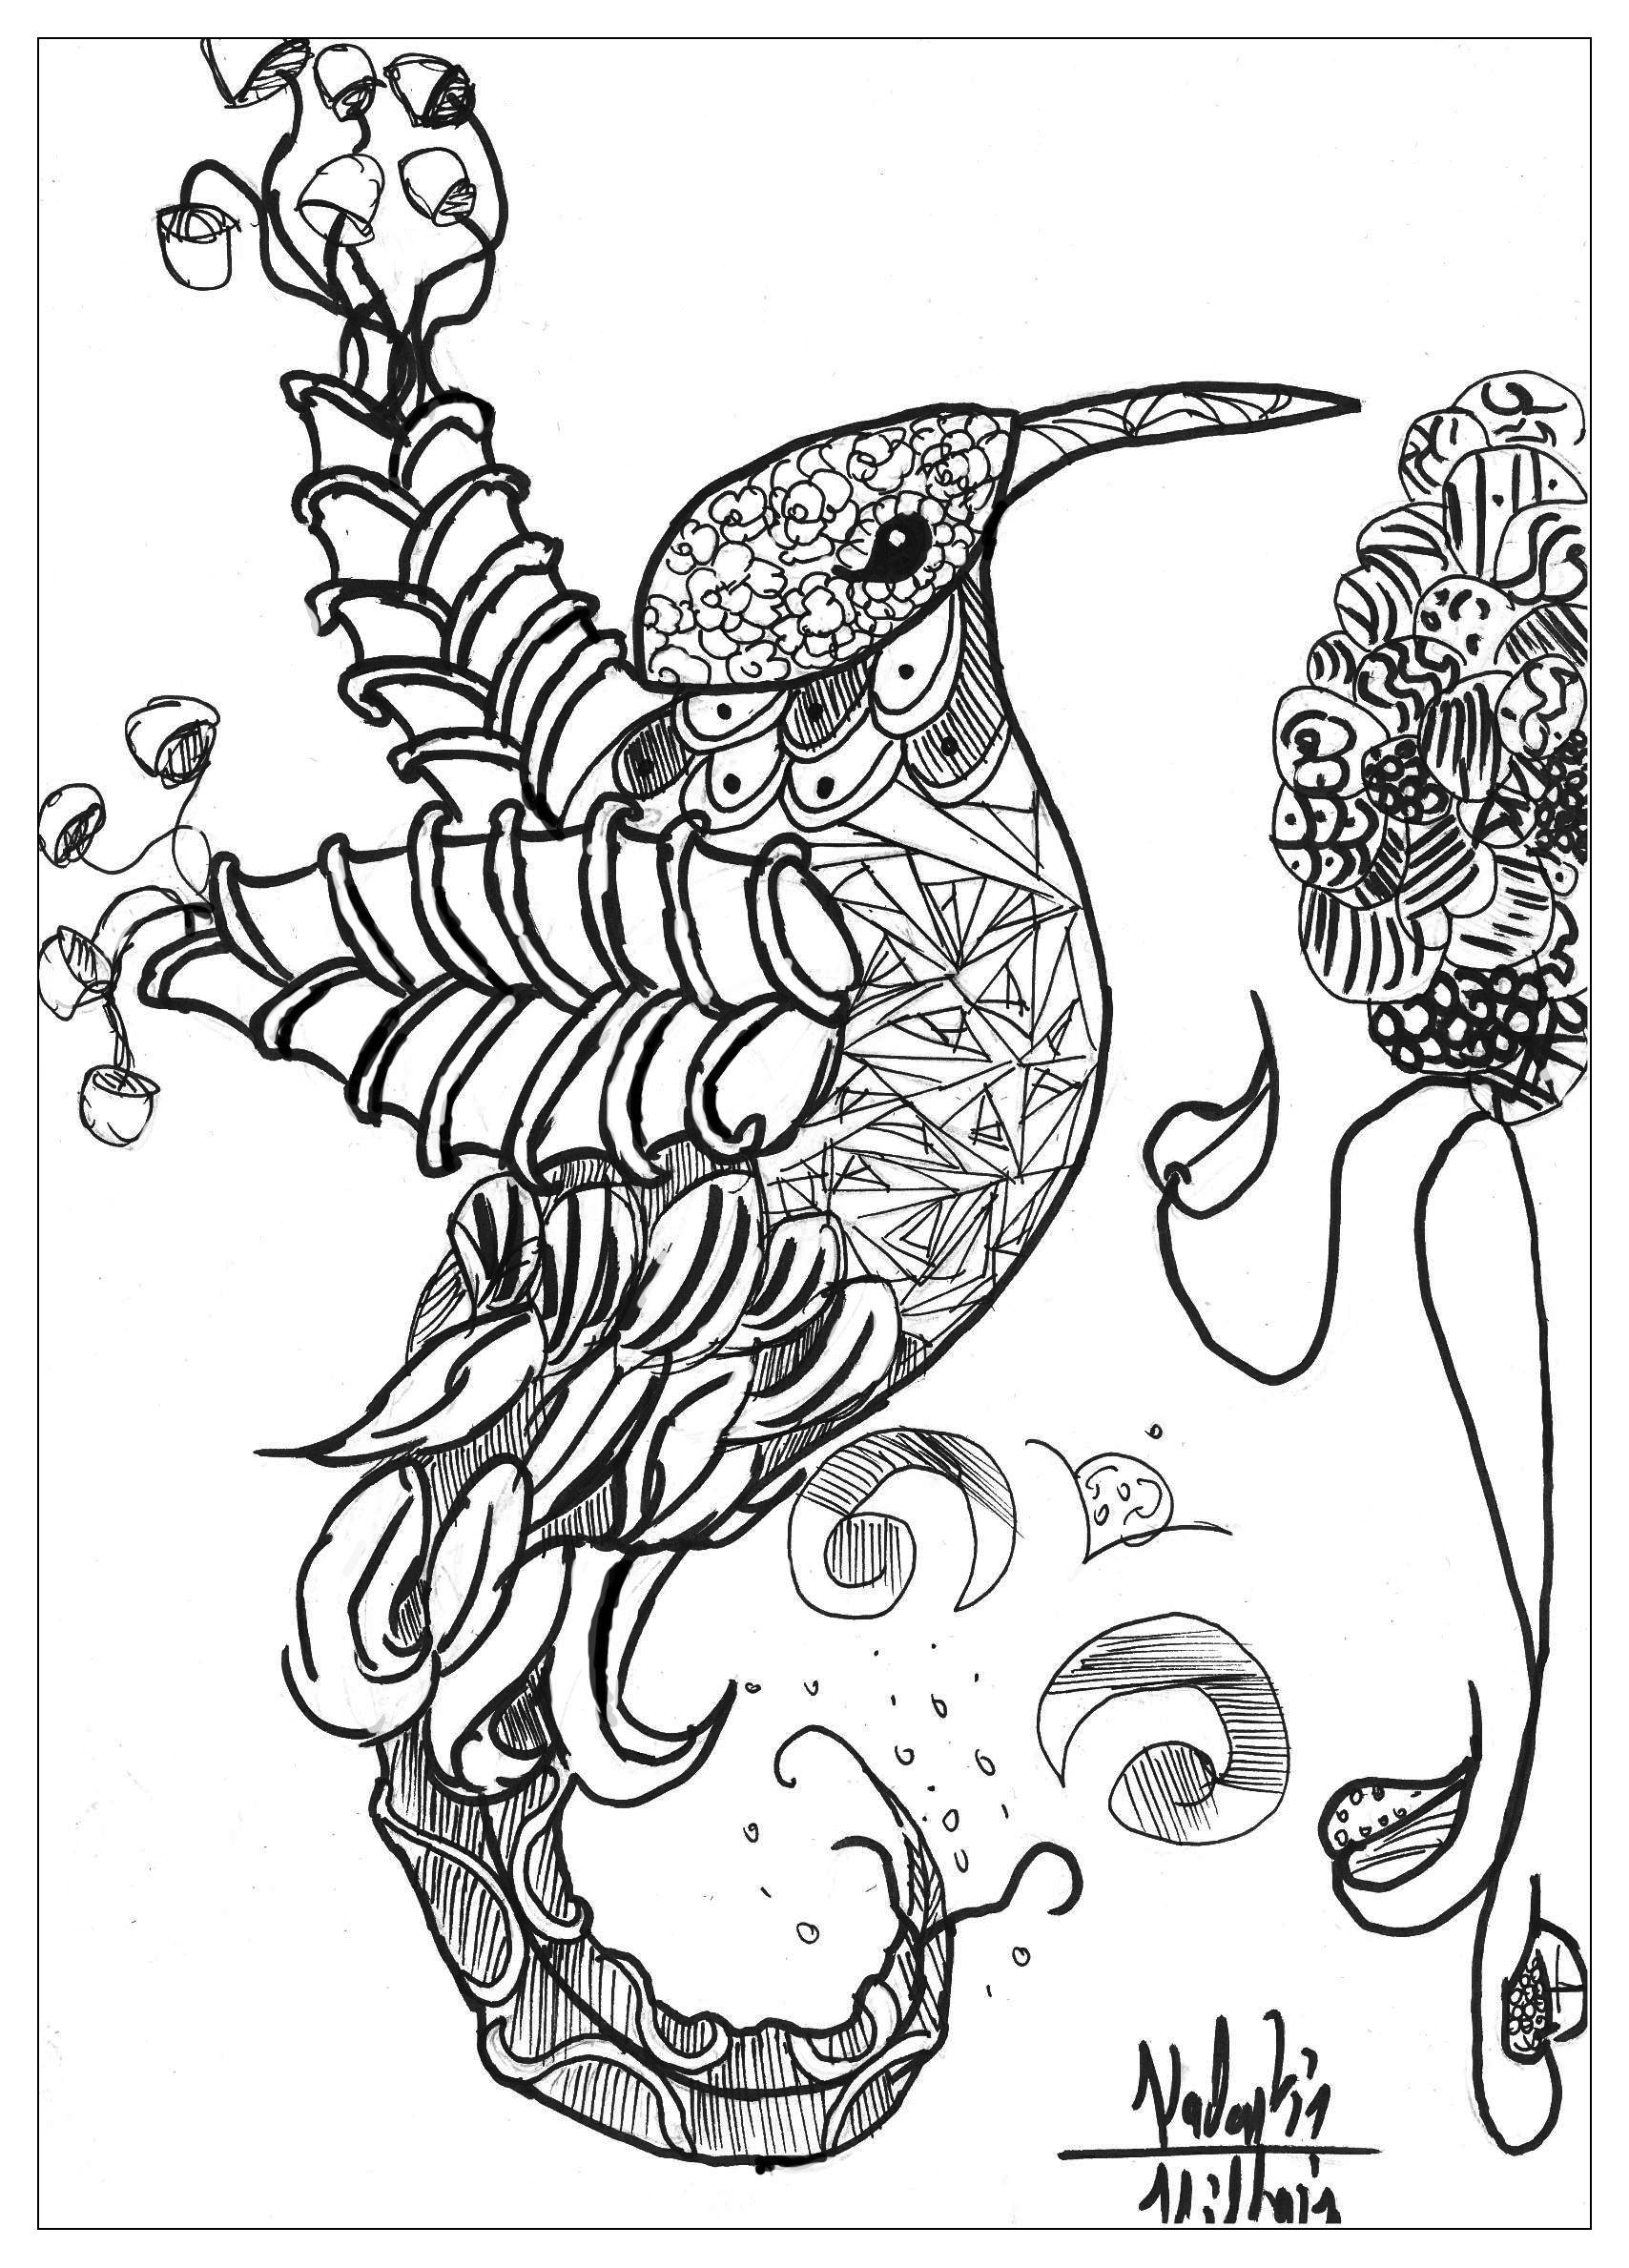 colouring sheets animals quirky artist loft 39cuties39 free animal coloring pages sheets animals colouring